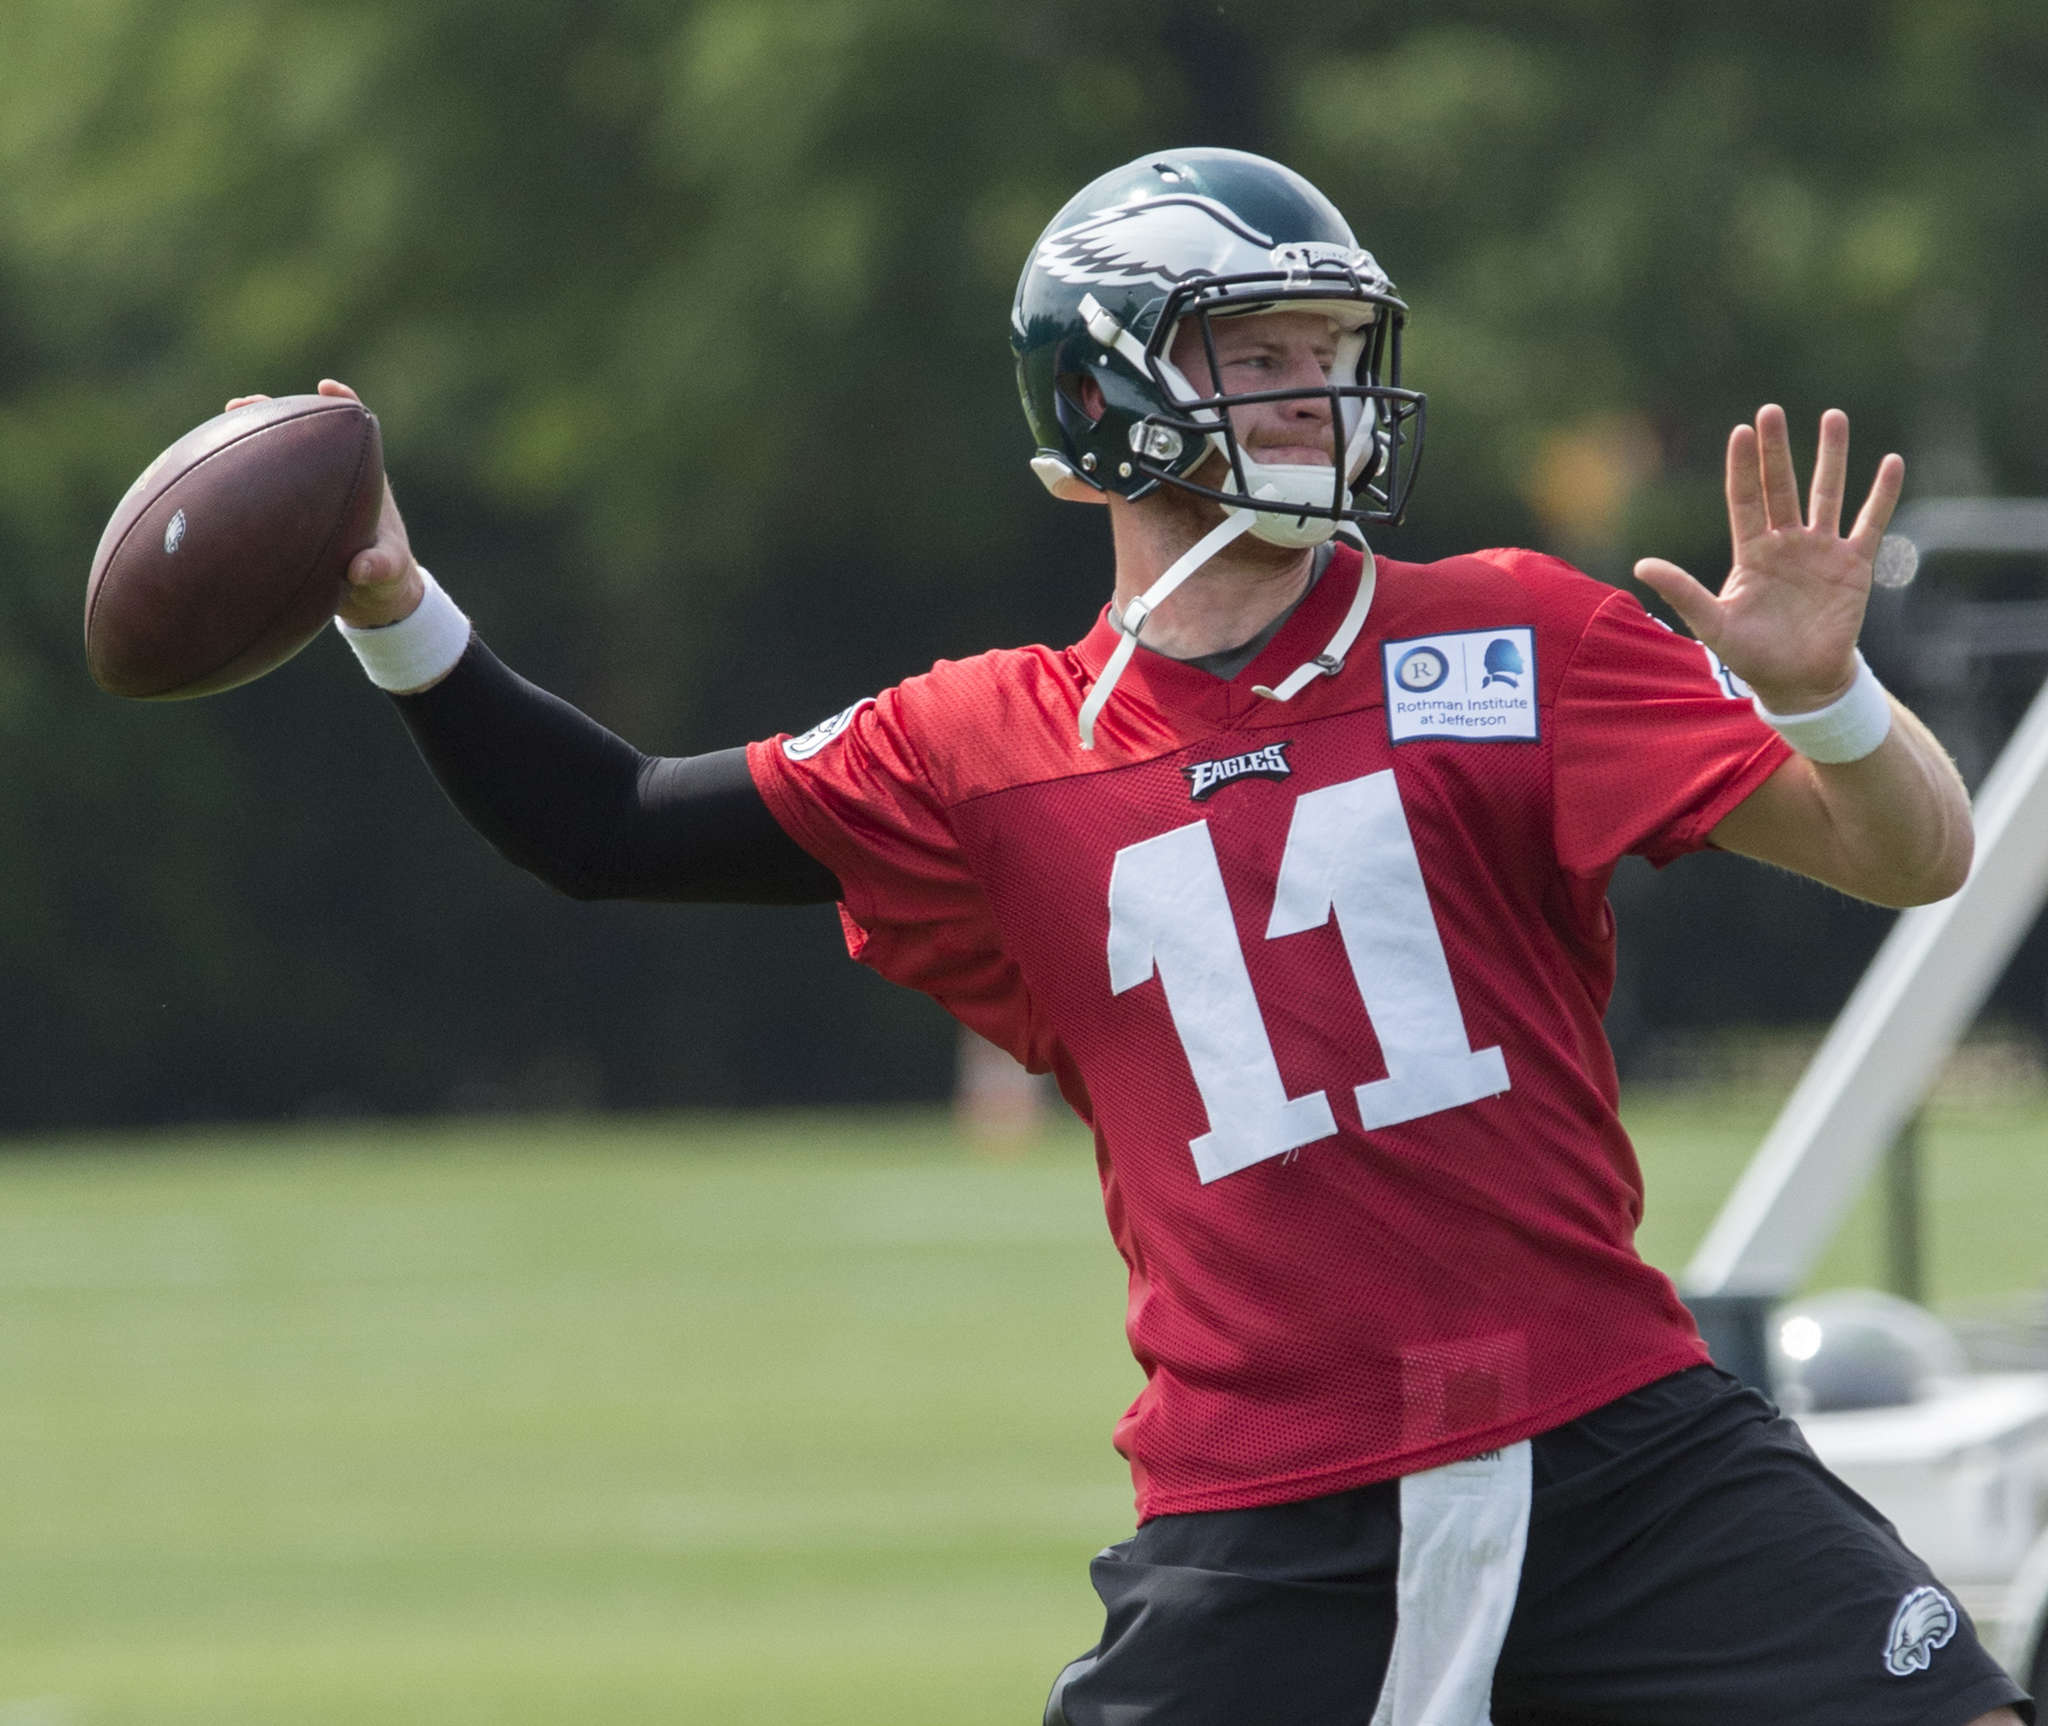 Carson Wentz will not be rushed into action the way other high-profile draft picks have been.